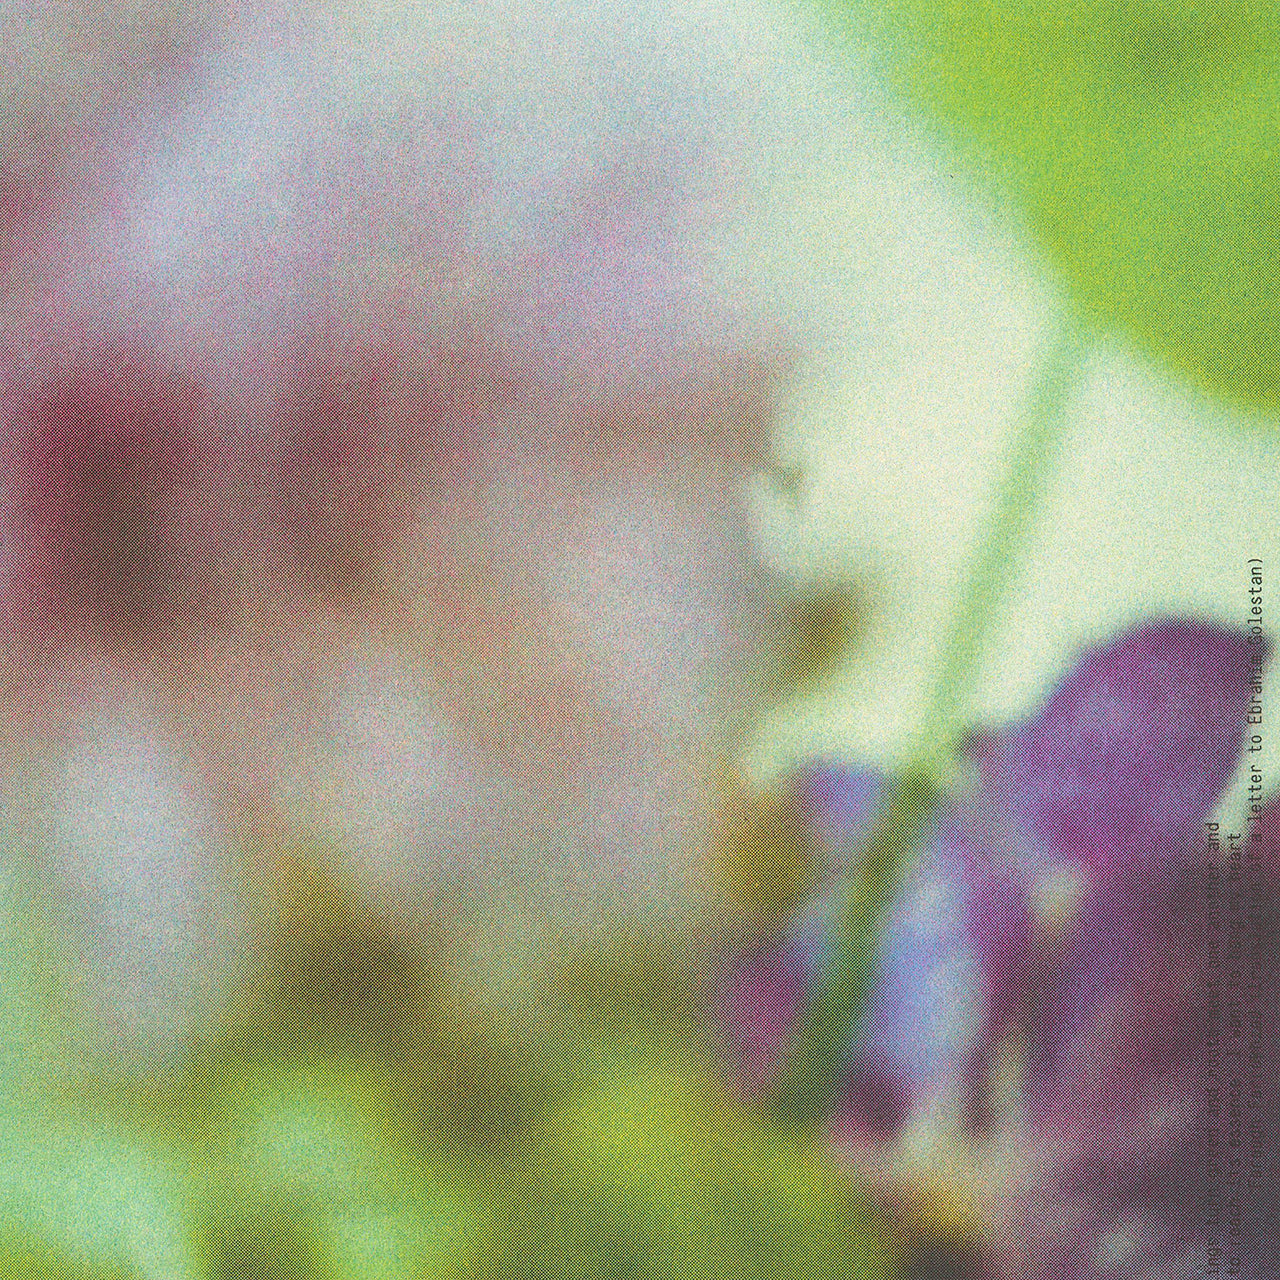 Up close detail of poster print for Banu Studio featuring blurry artistic photography of flowers